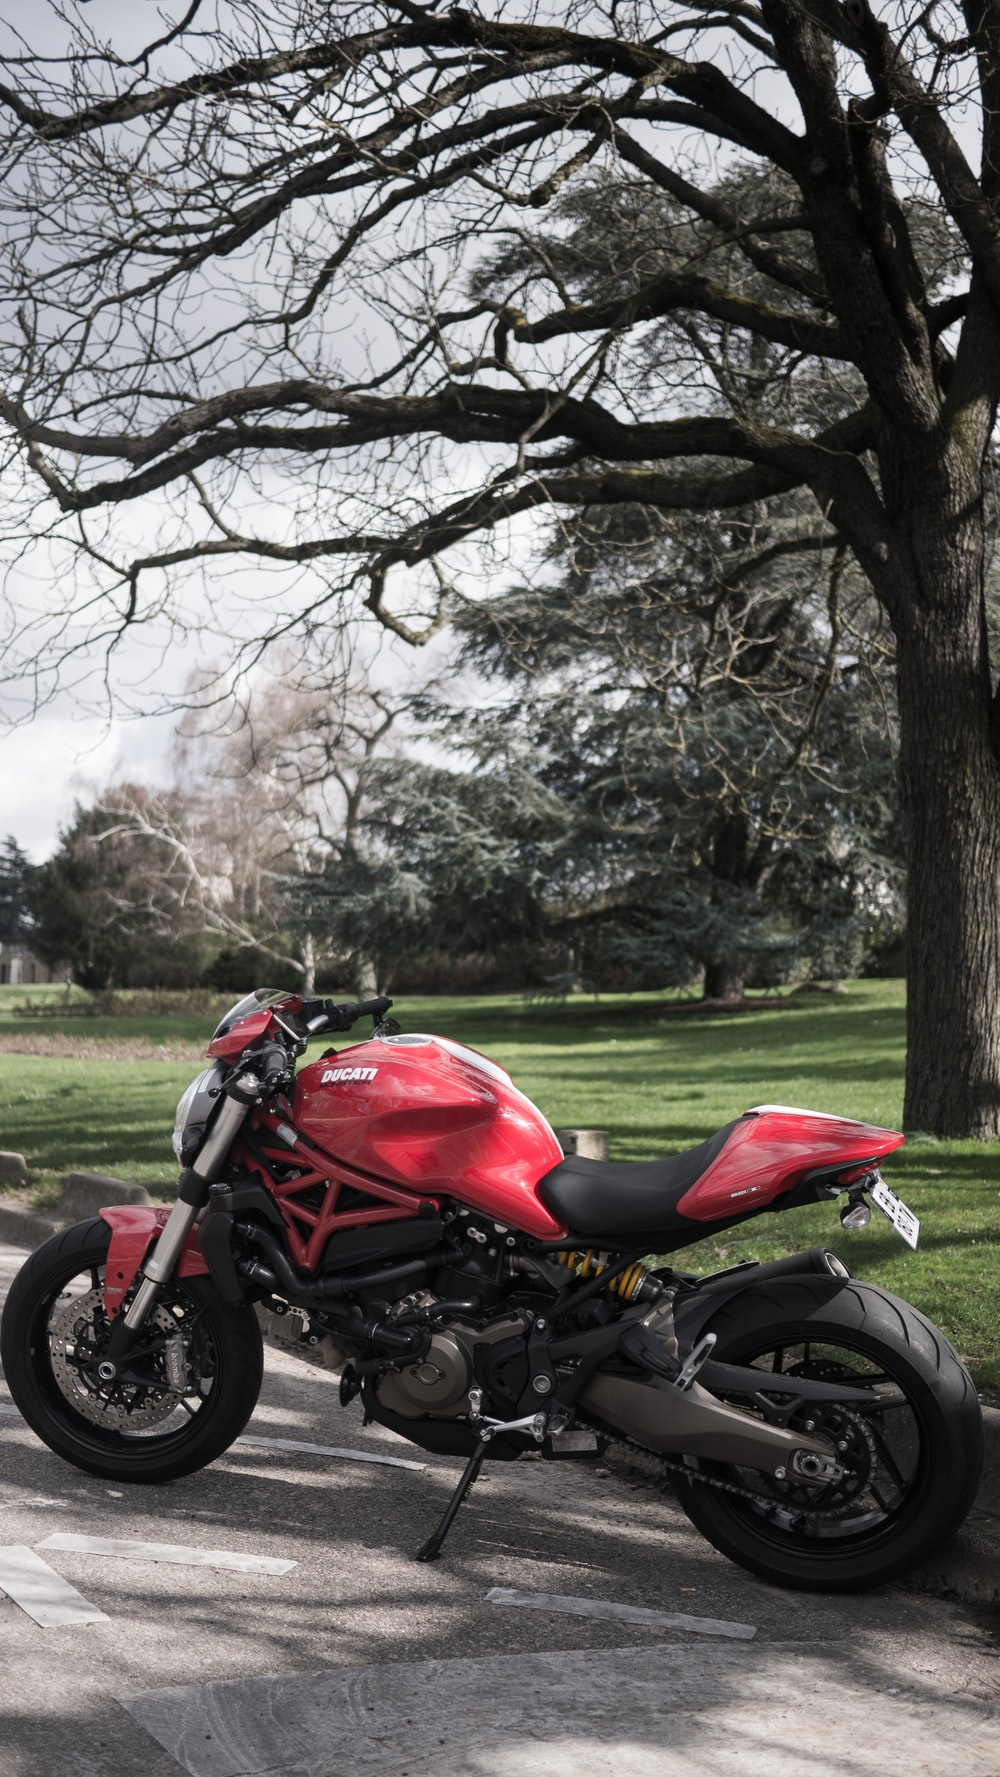 red and black motorcycle parked on green grass field near brown trees during daytime